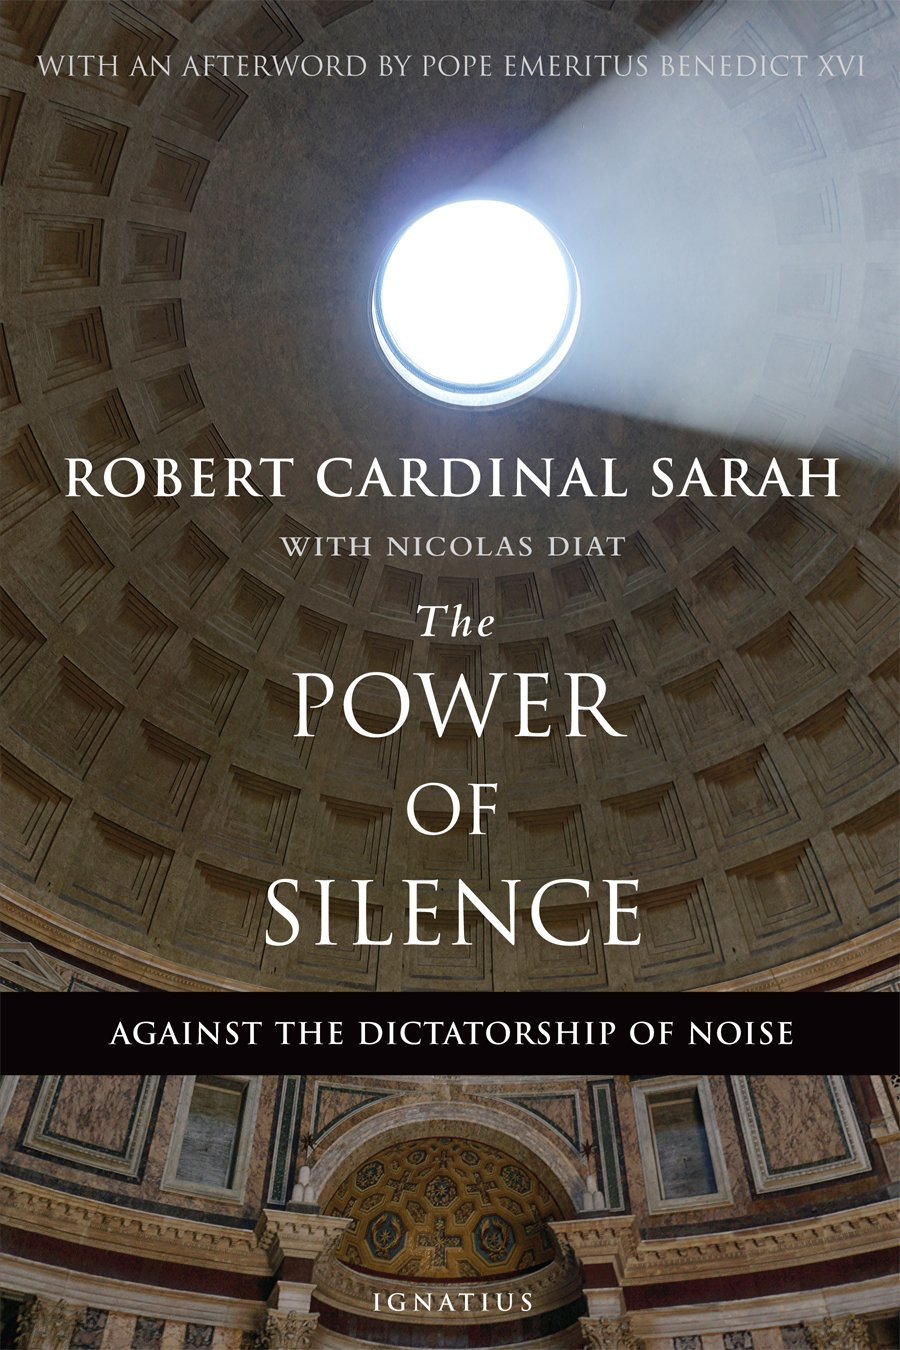 The Power Of Silence: Against The Dictatorship Of Noise: Robert Sarah,  Nicolas Diat: 9781621641919: Amazon: Books